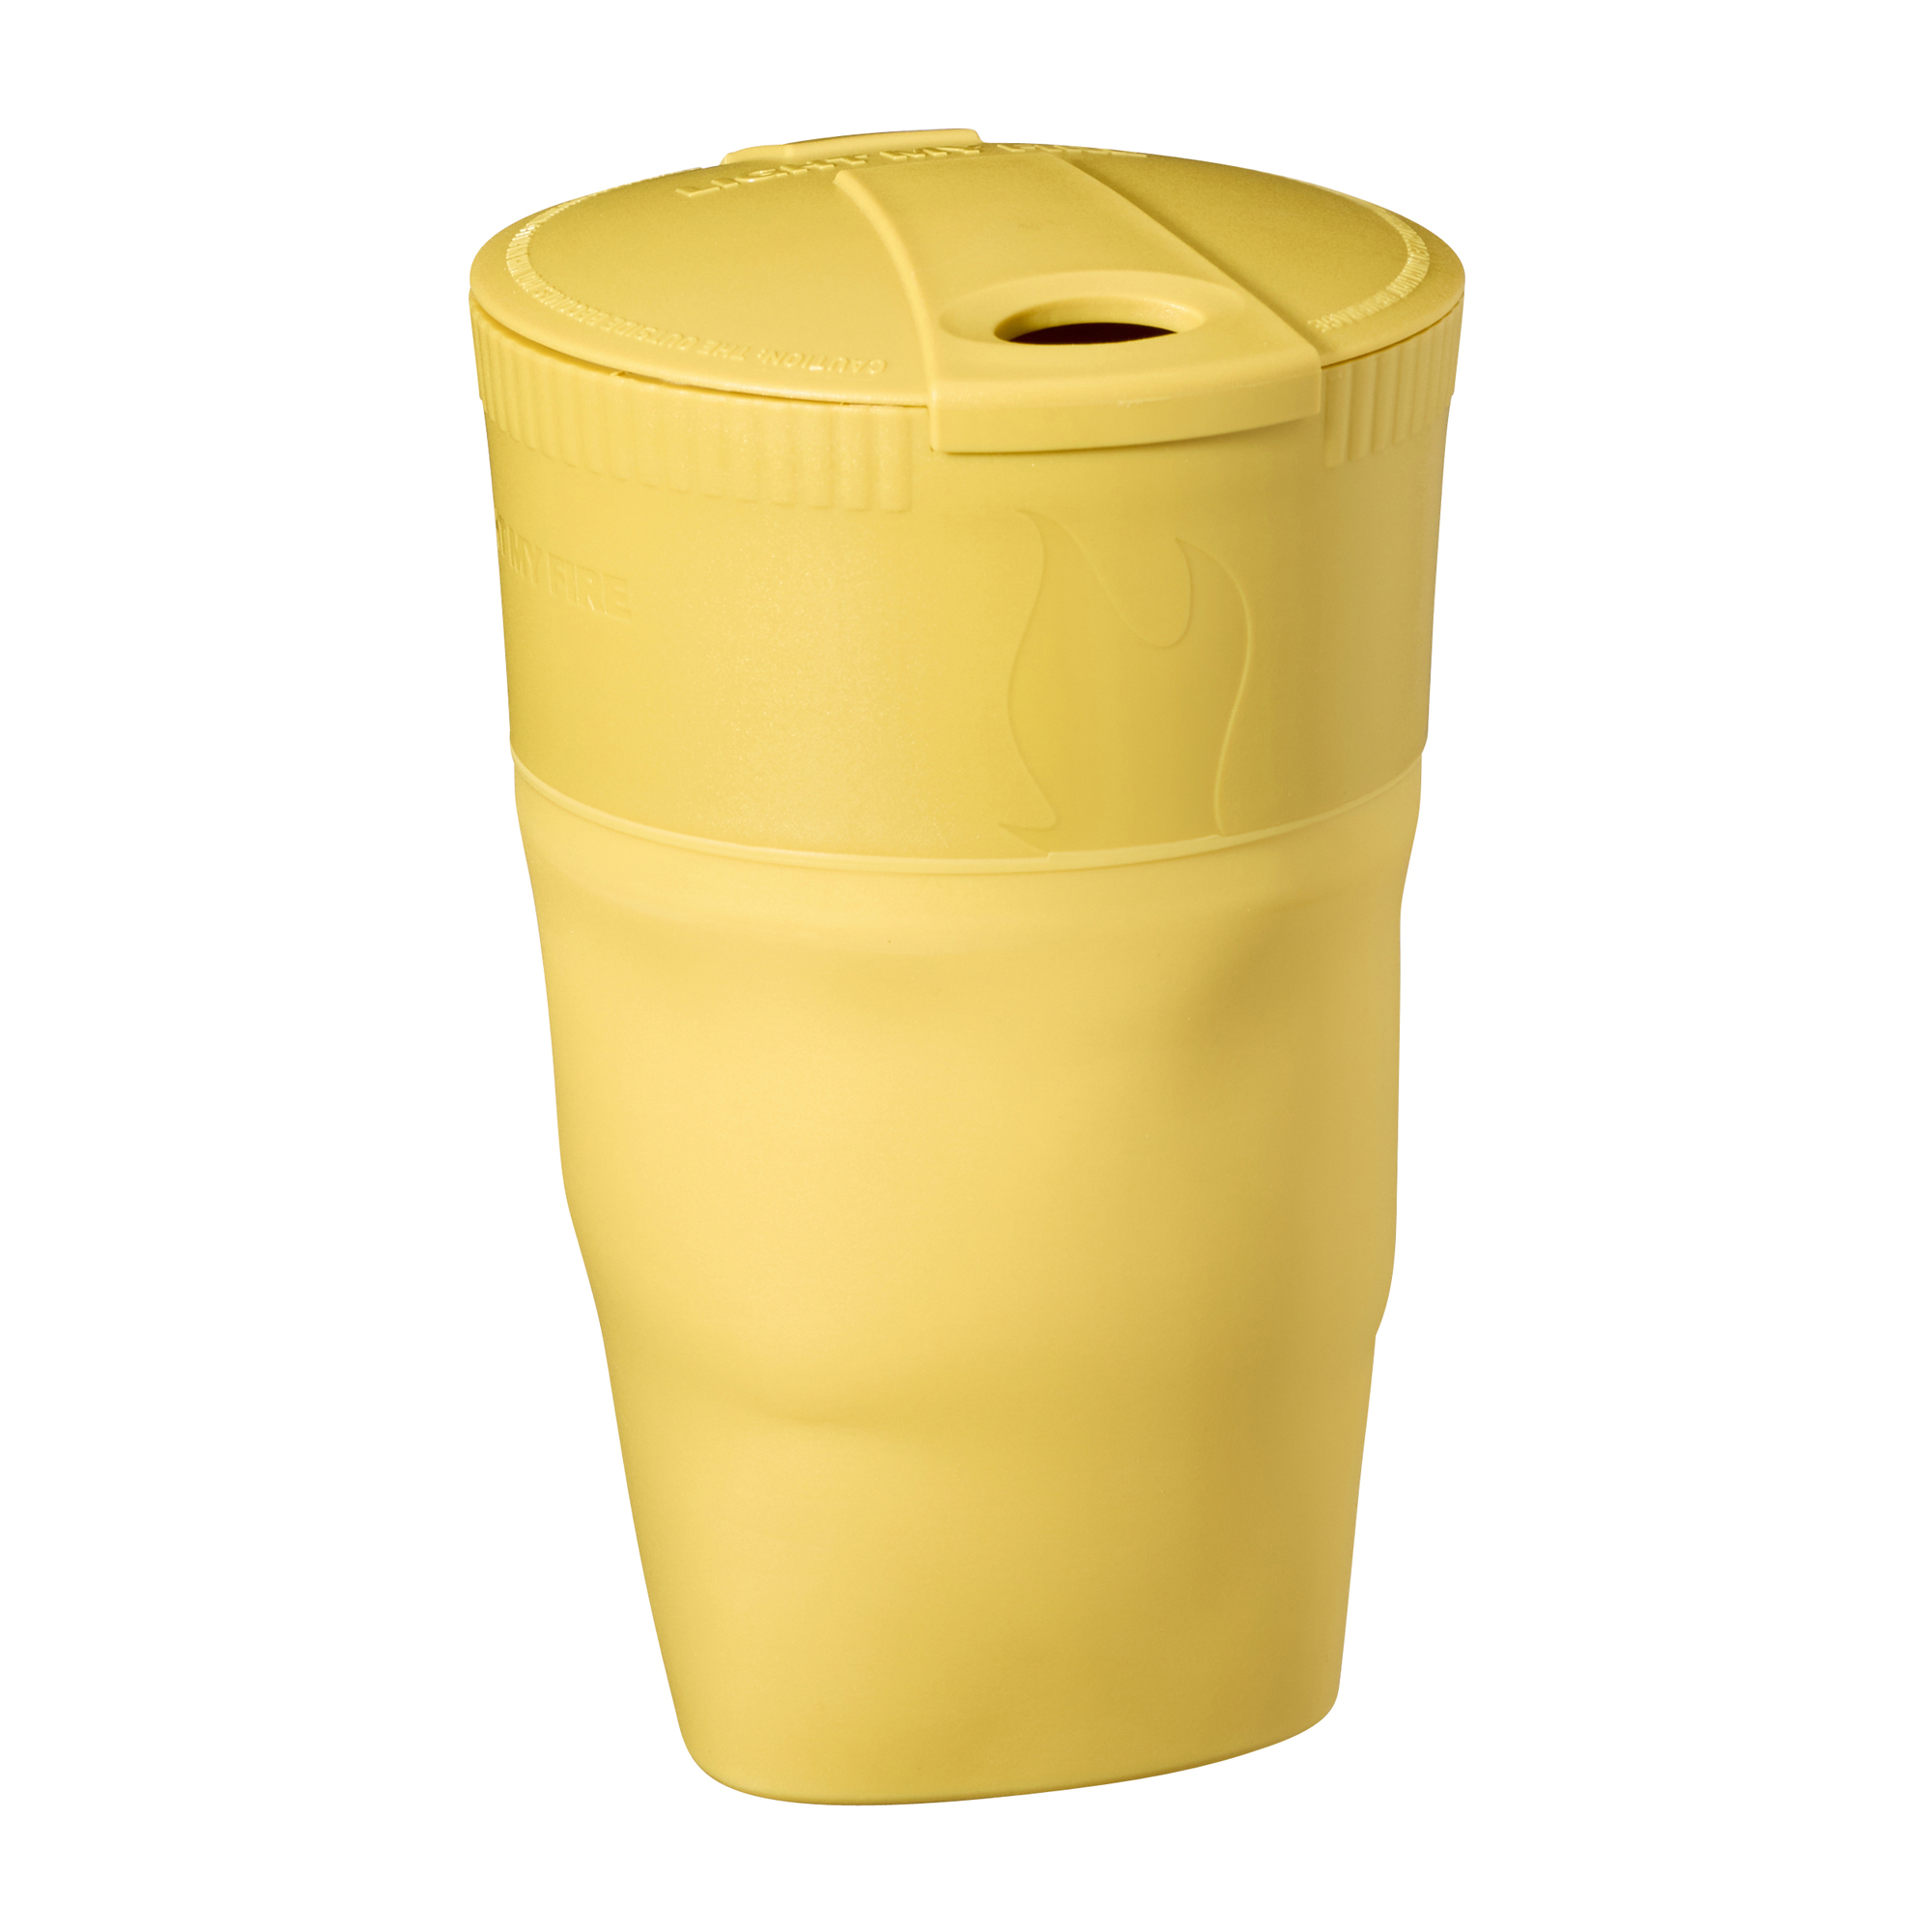 Light my Fire Pack up Cup mustyyellow